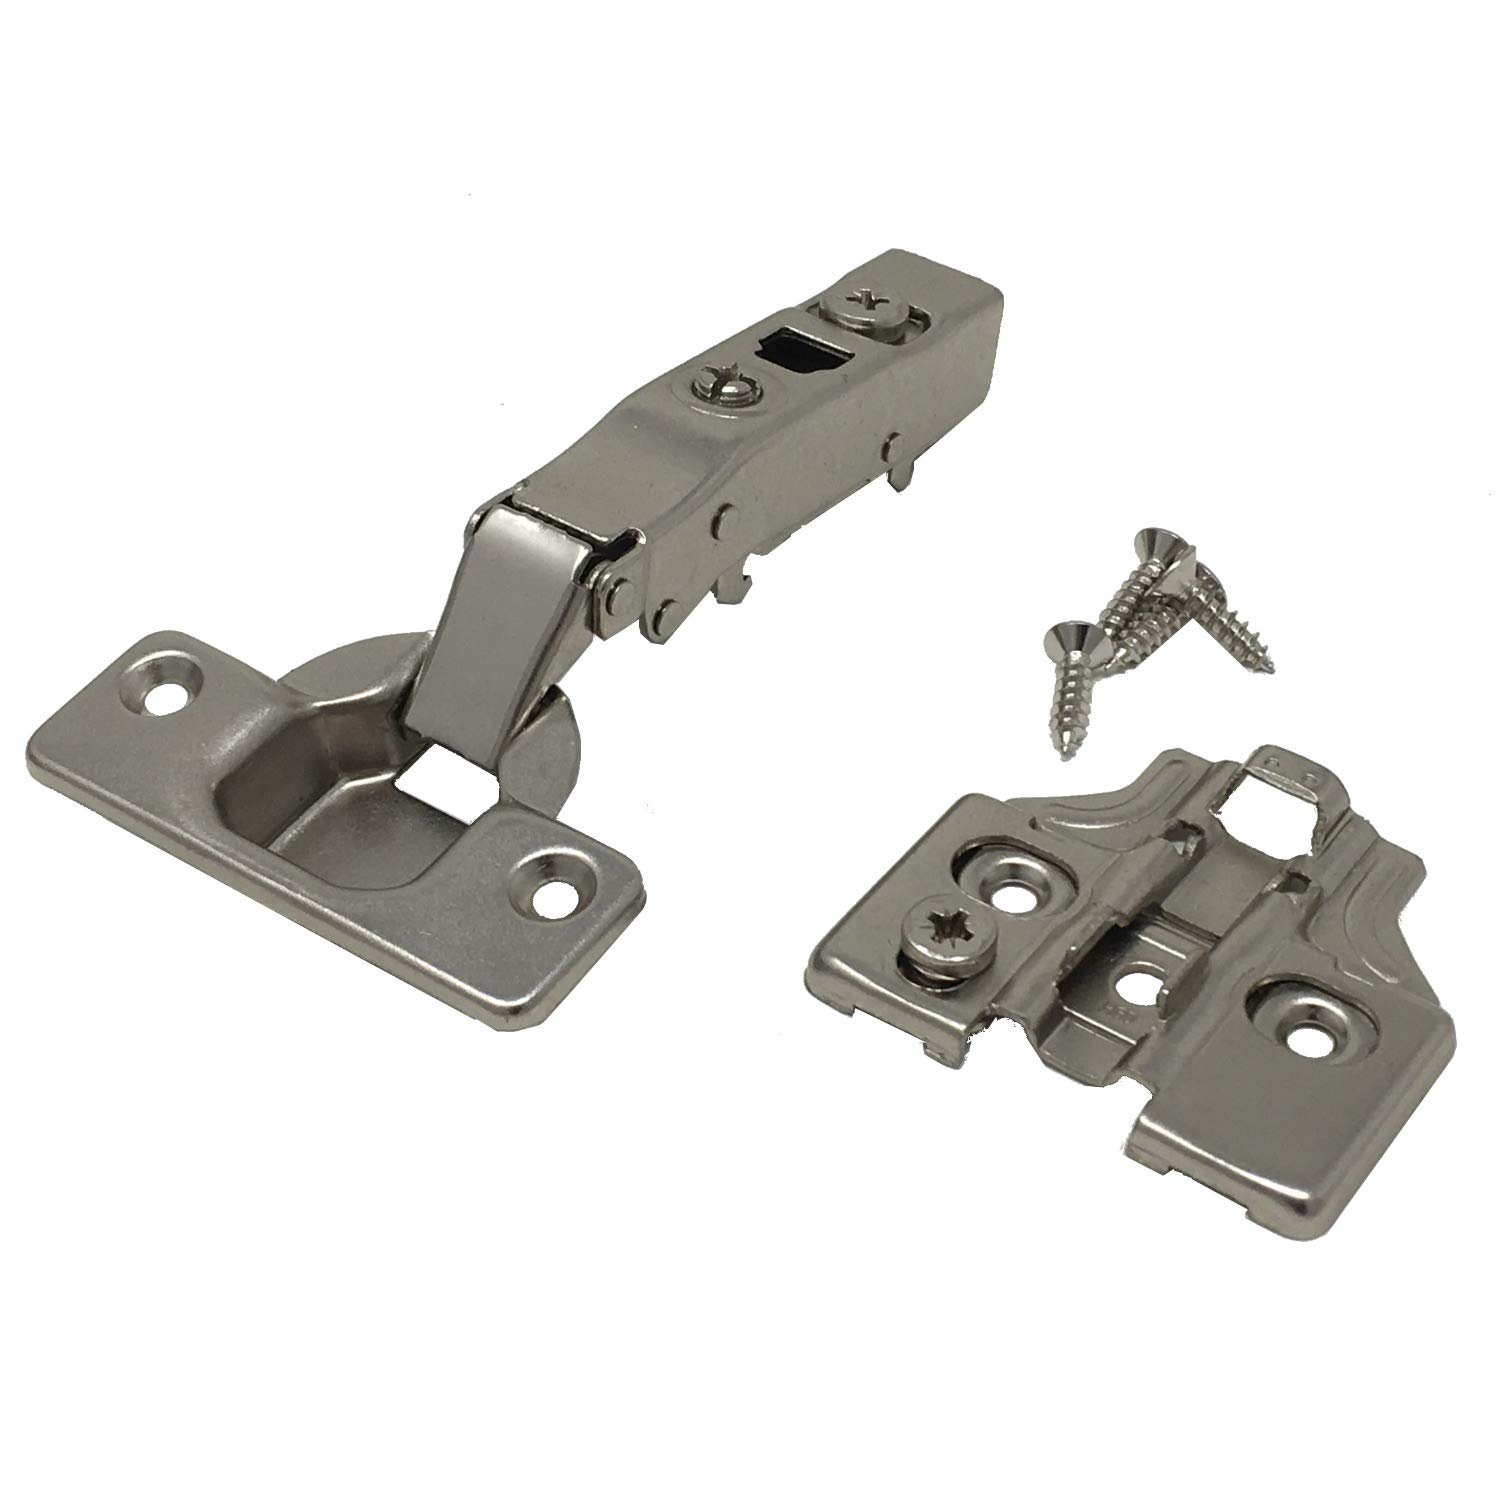 D.H.S. Euro Hinge - Soft Close - Full Overlay 105° - 3D Cam Adjustable w/Mounting Plates & Screws - 4 Pairs